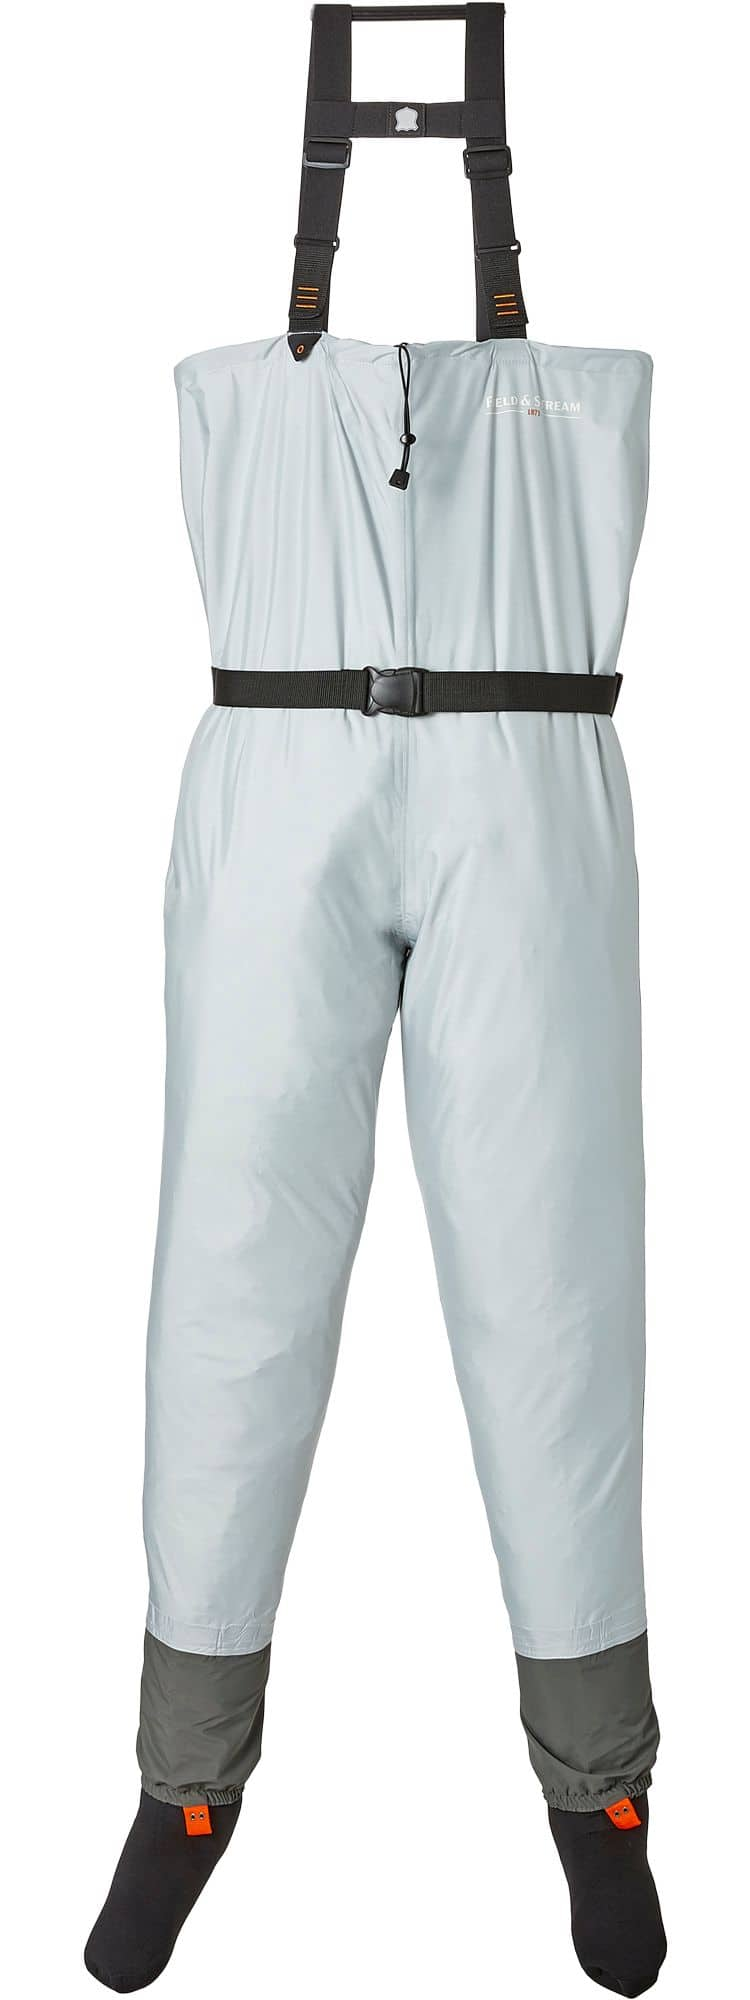 Field & Stream Seneca Packable Chest Waders $38 from $100